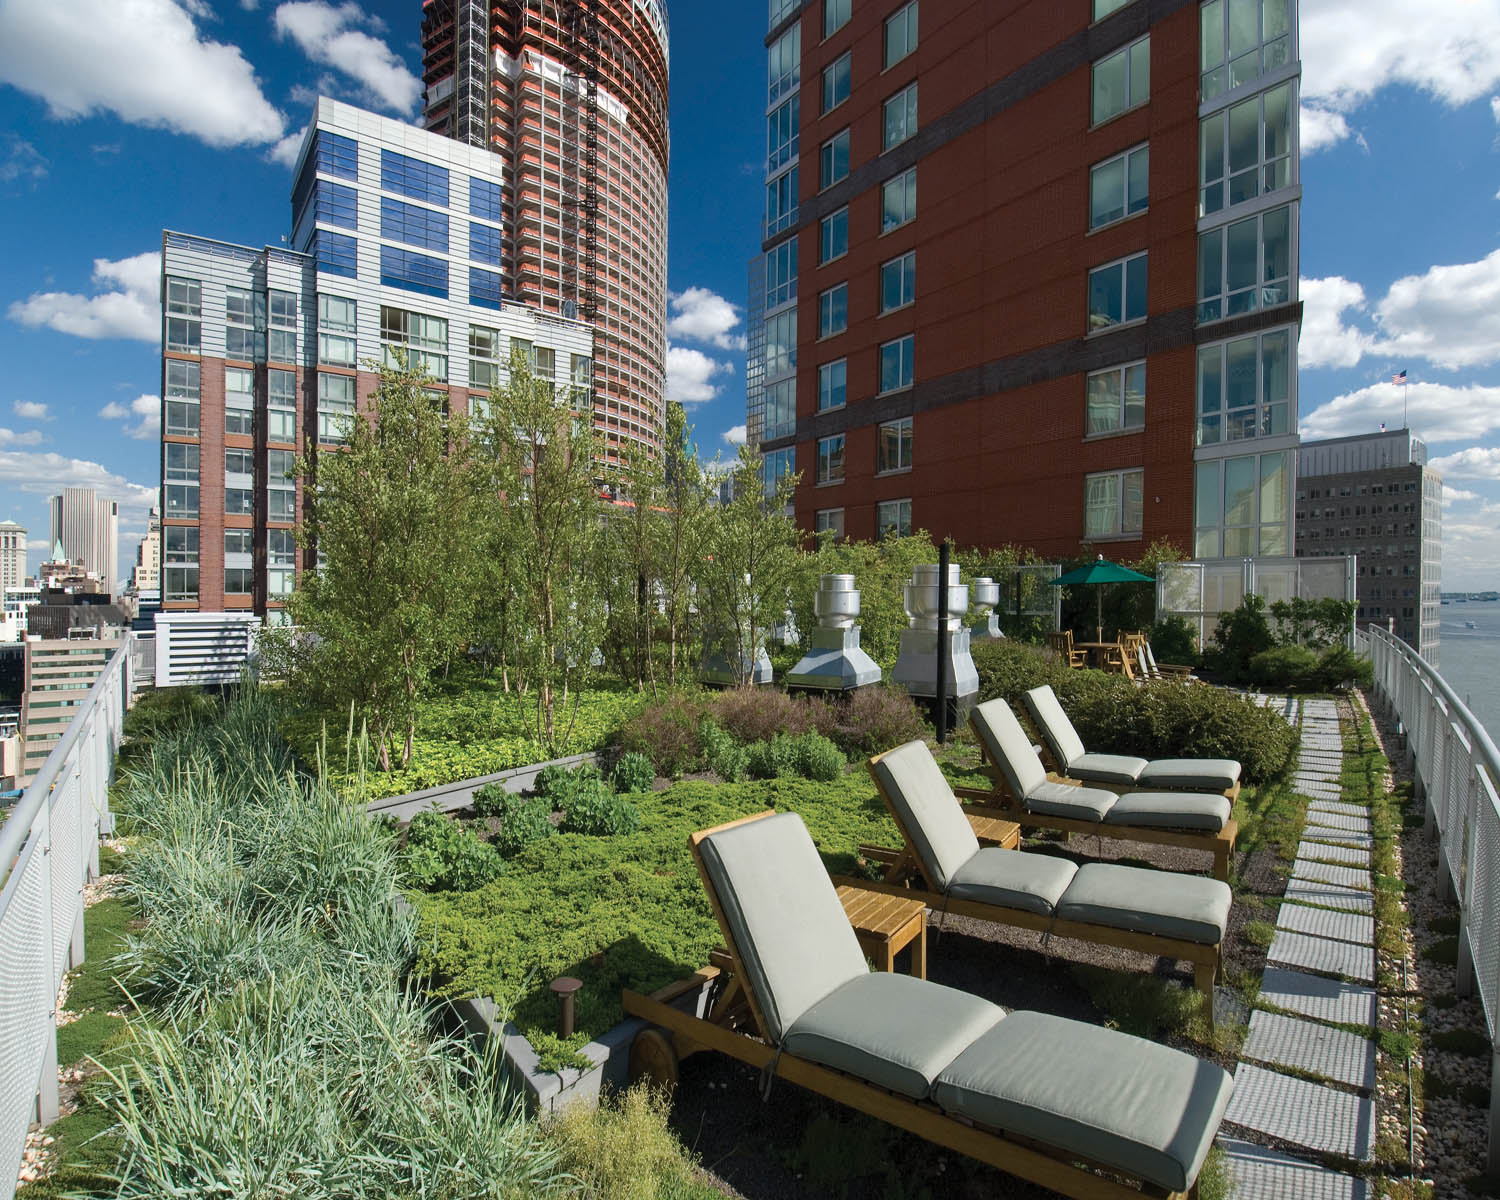 The solaire 20 river terrace american hydrotech inc for 10 river terrace new york